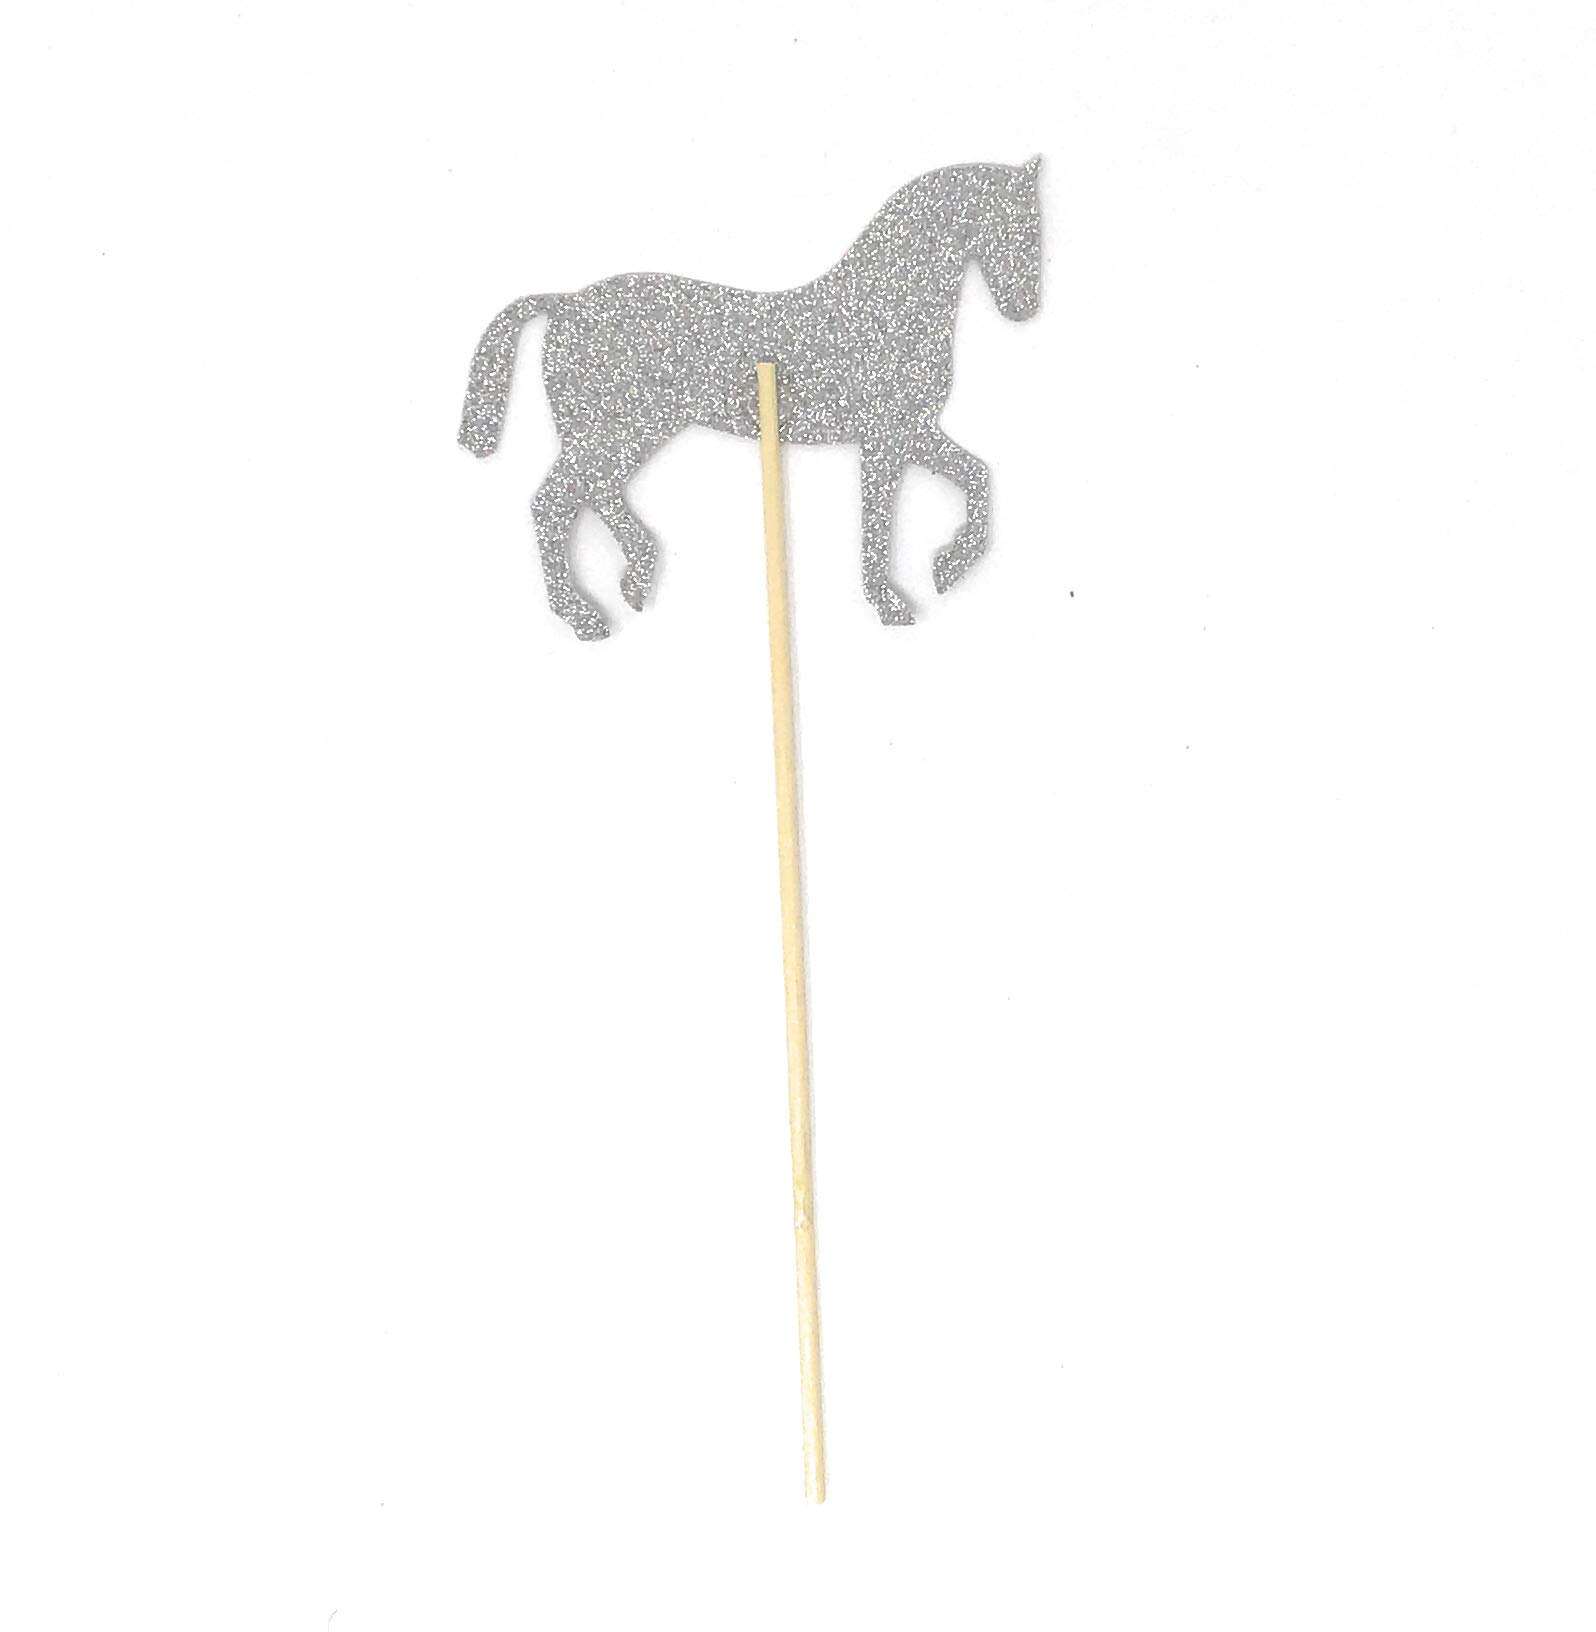 PaperGala Horse Double Sided Centerpiece Sticks Set of 8 Real Glitter (Silver) by PaperGala (Image #3)